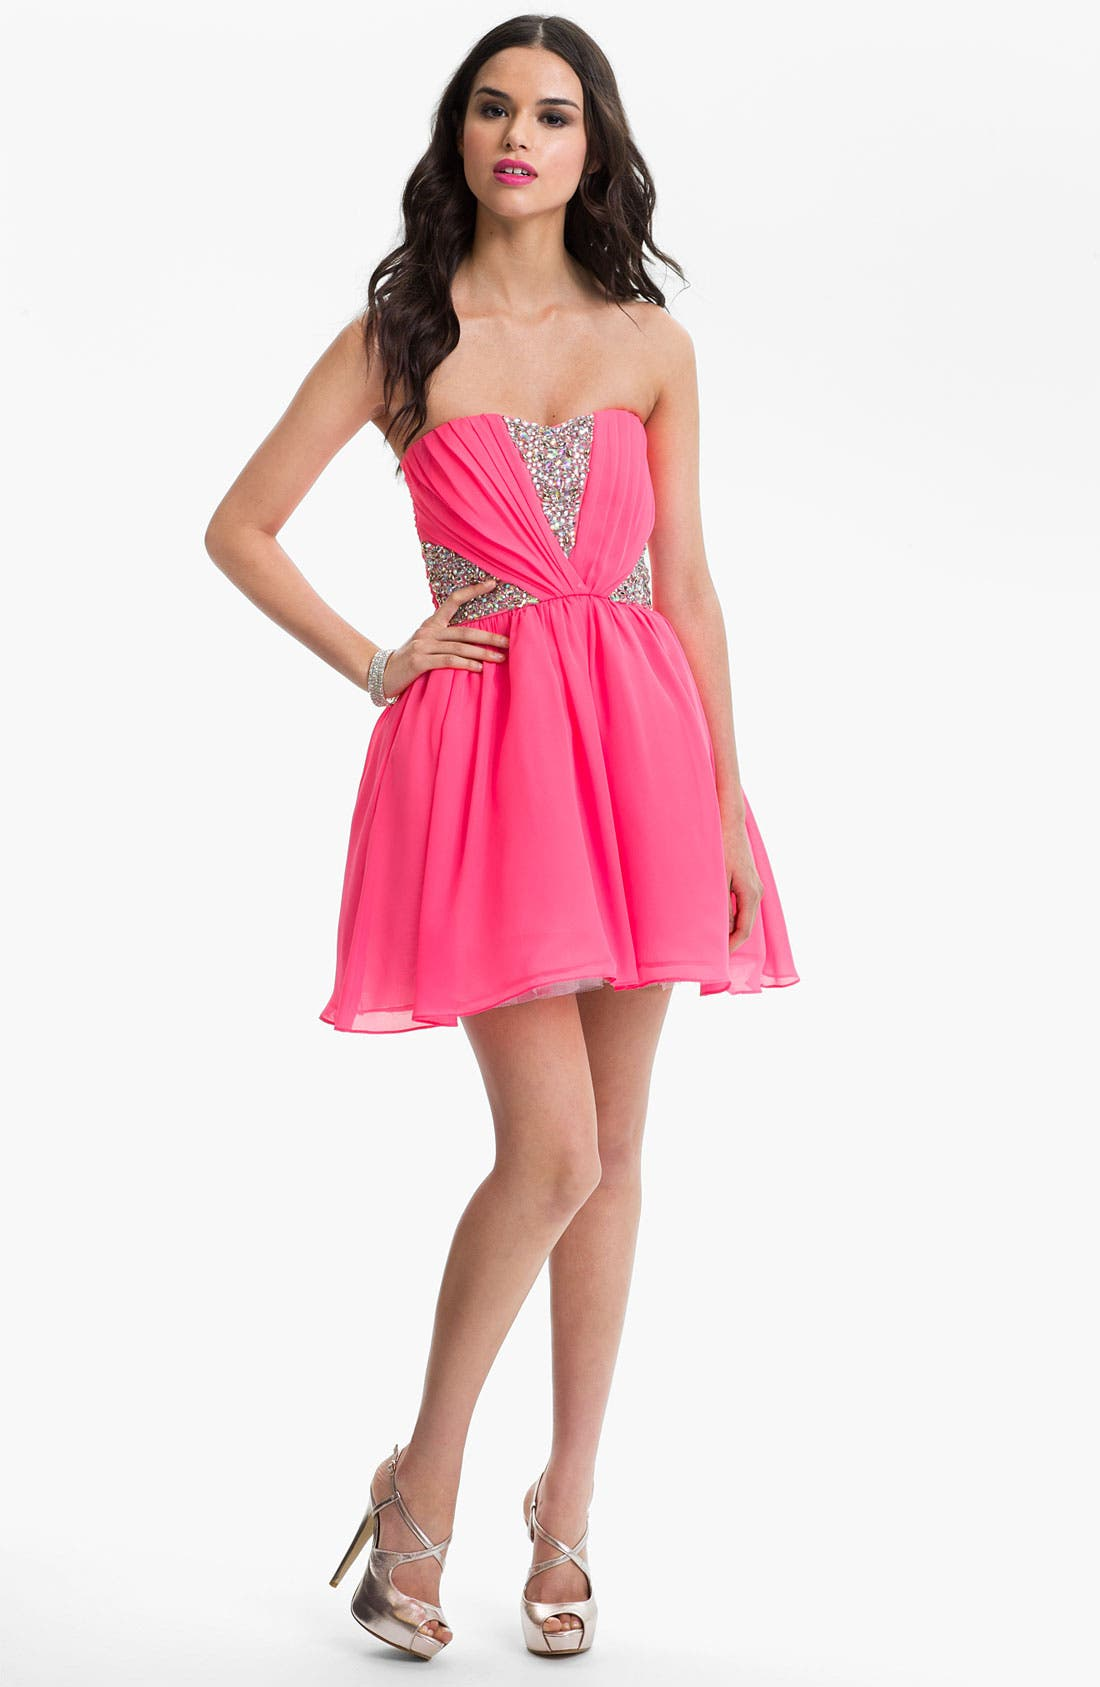 Alternate Image 1 Selected - As U Wish Embellished Fit & Flare Dress (Juniors) (Online Exclusive)